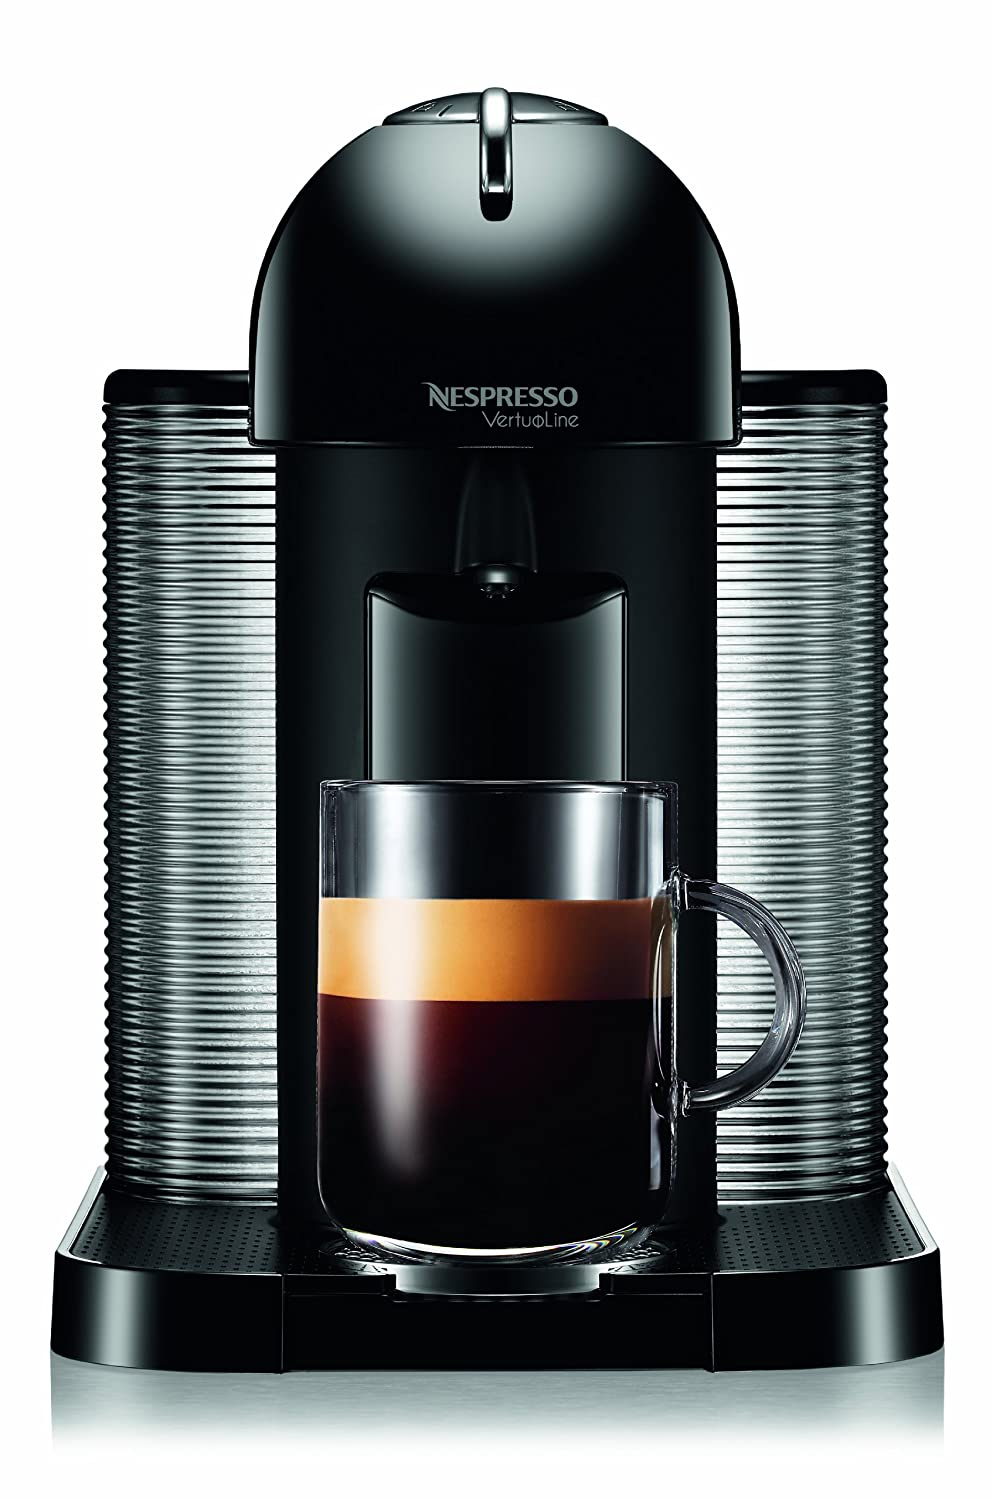 Nespresso VertuoLine Review - Is it Really Worth? (Updated. 2018)